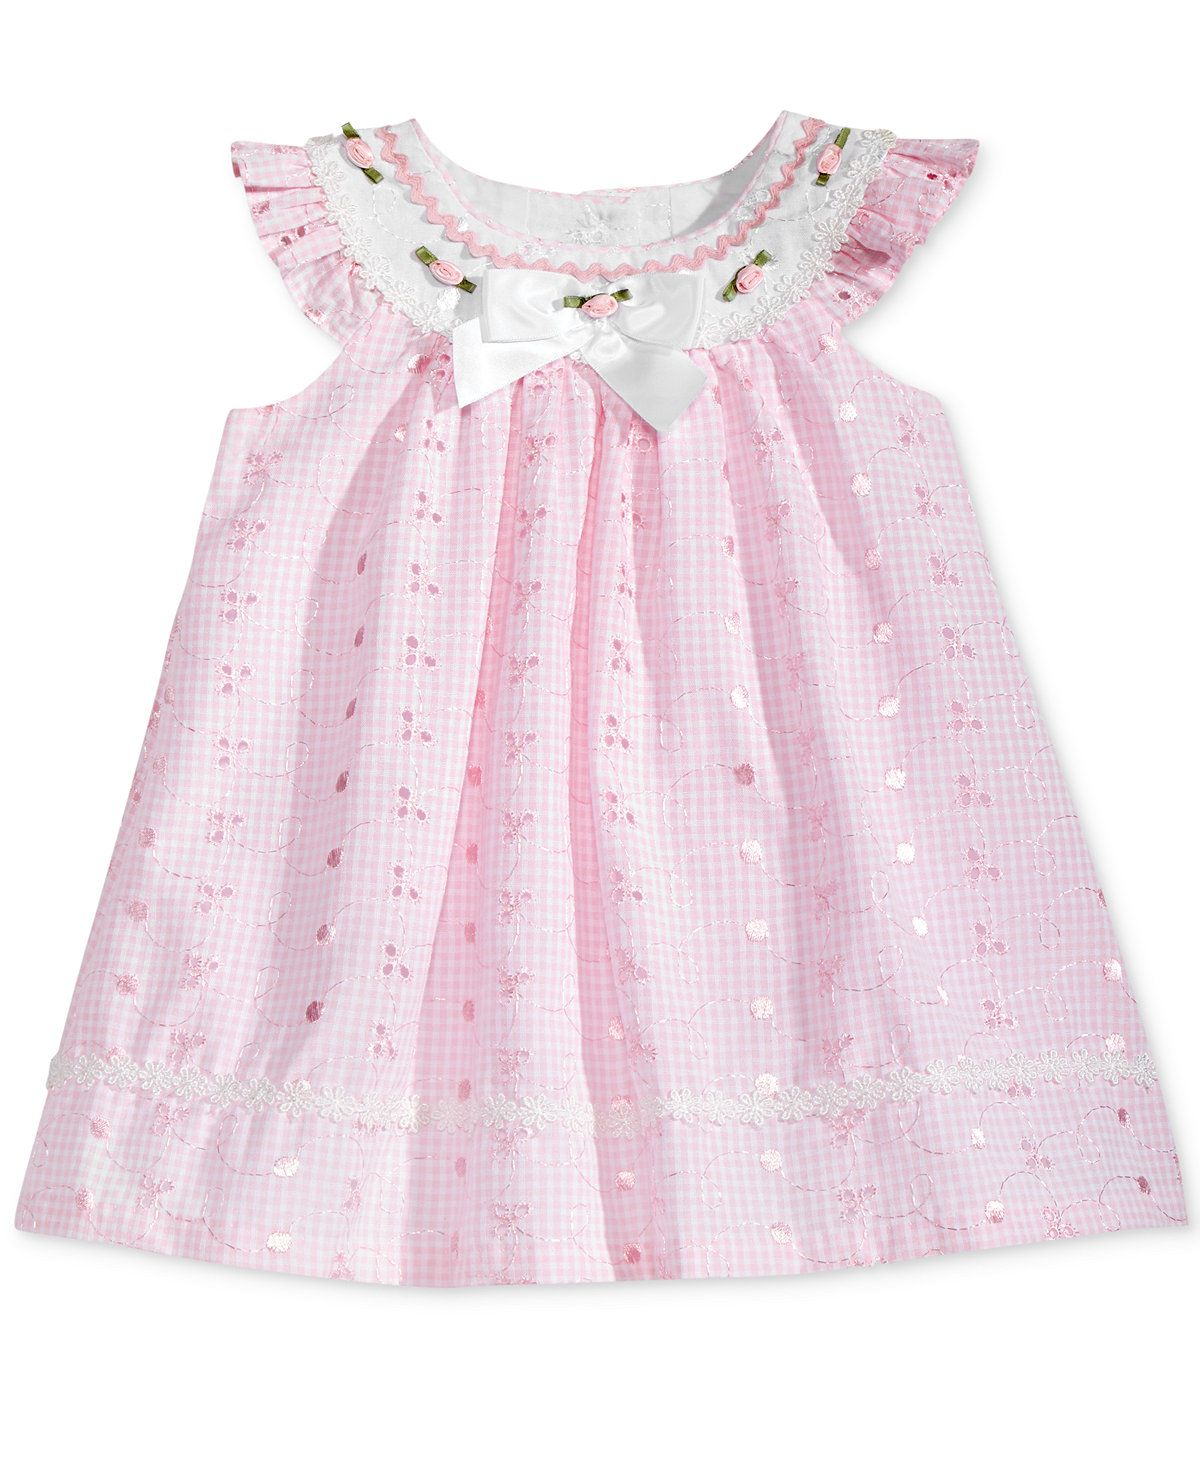 e32ef67d8a28 Bonnie Baby Flutter-Sleeve Eyelet Trapeze Dress, Baby Girls (0-24 months) -  All Baby - Kids & Baby - Macy's